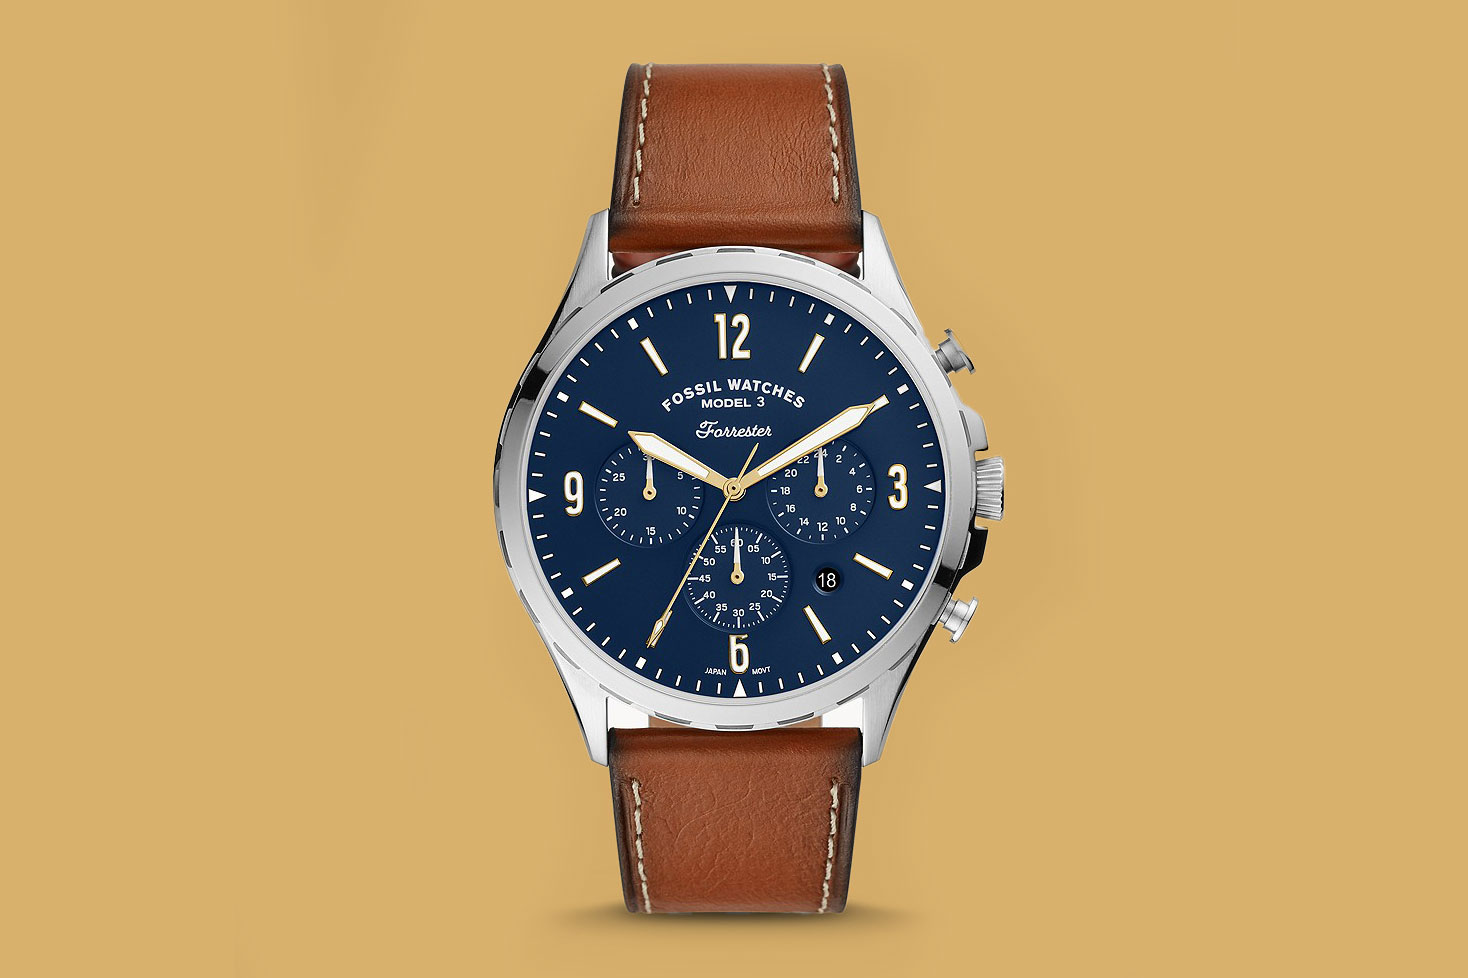 FOSSIL Forrester Chronograph Luggage Leather Strap Watch